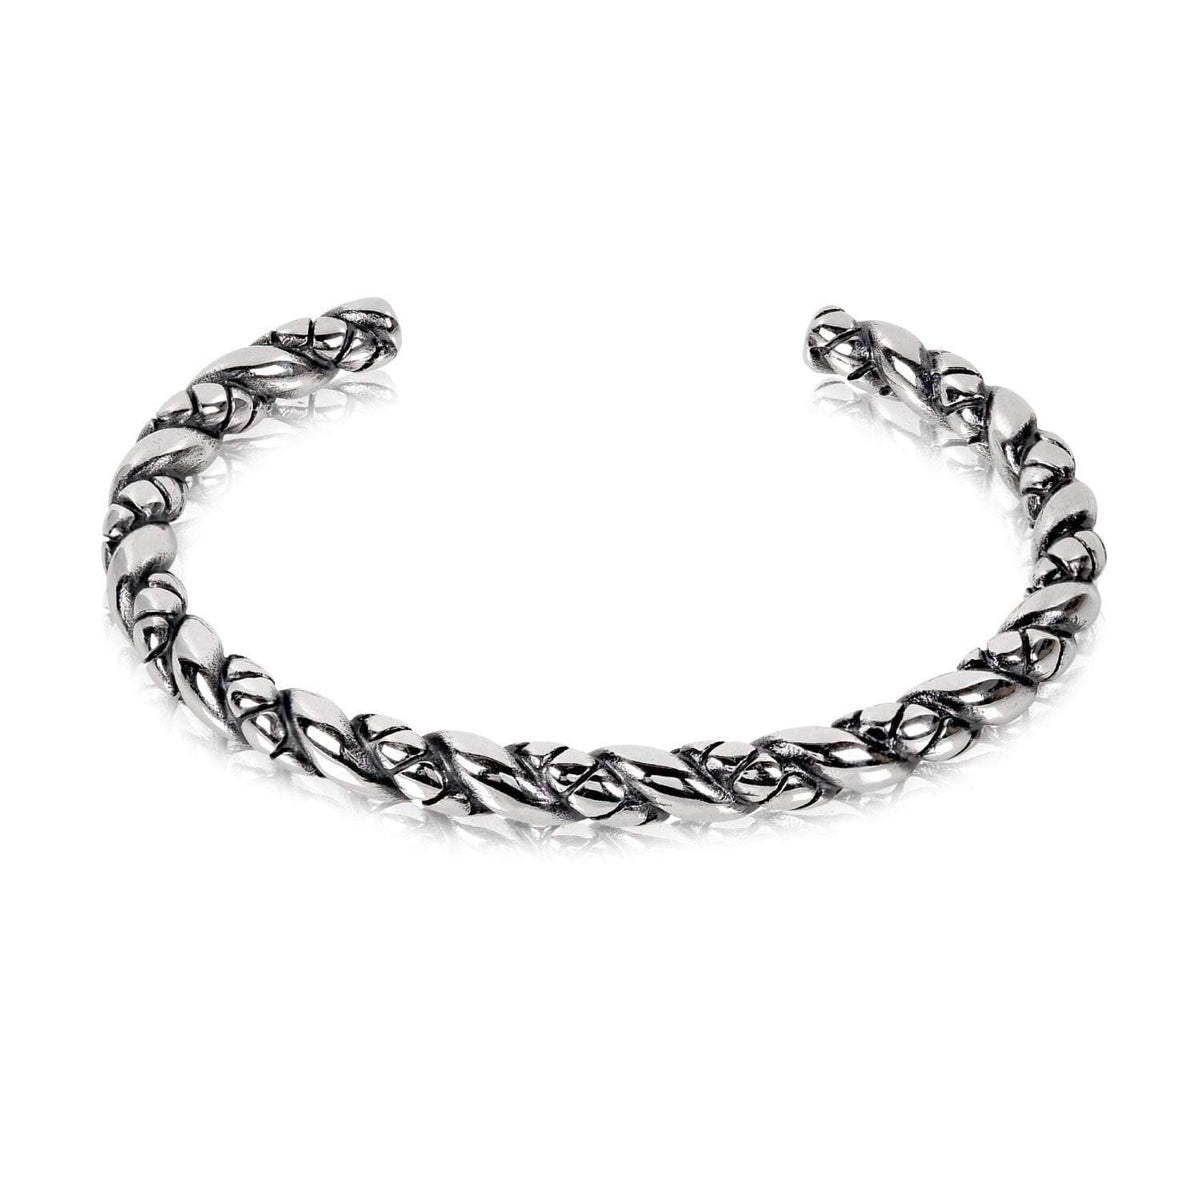 A.R.Z Steel - Twisted Oxidized Stainless Steel C Bangle